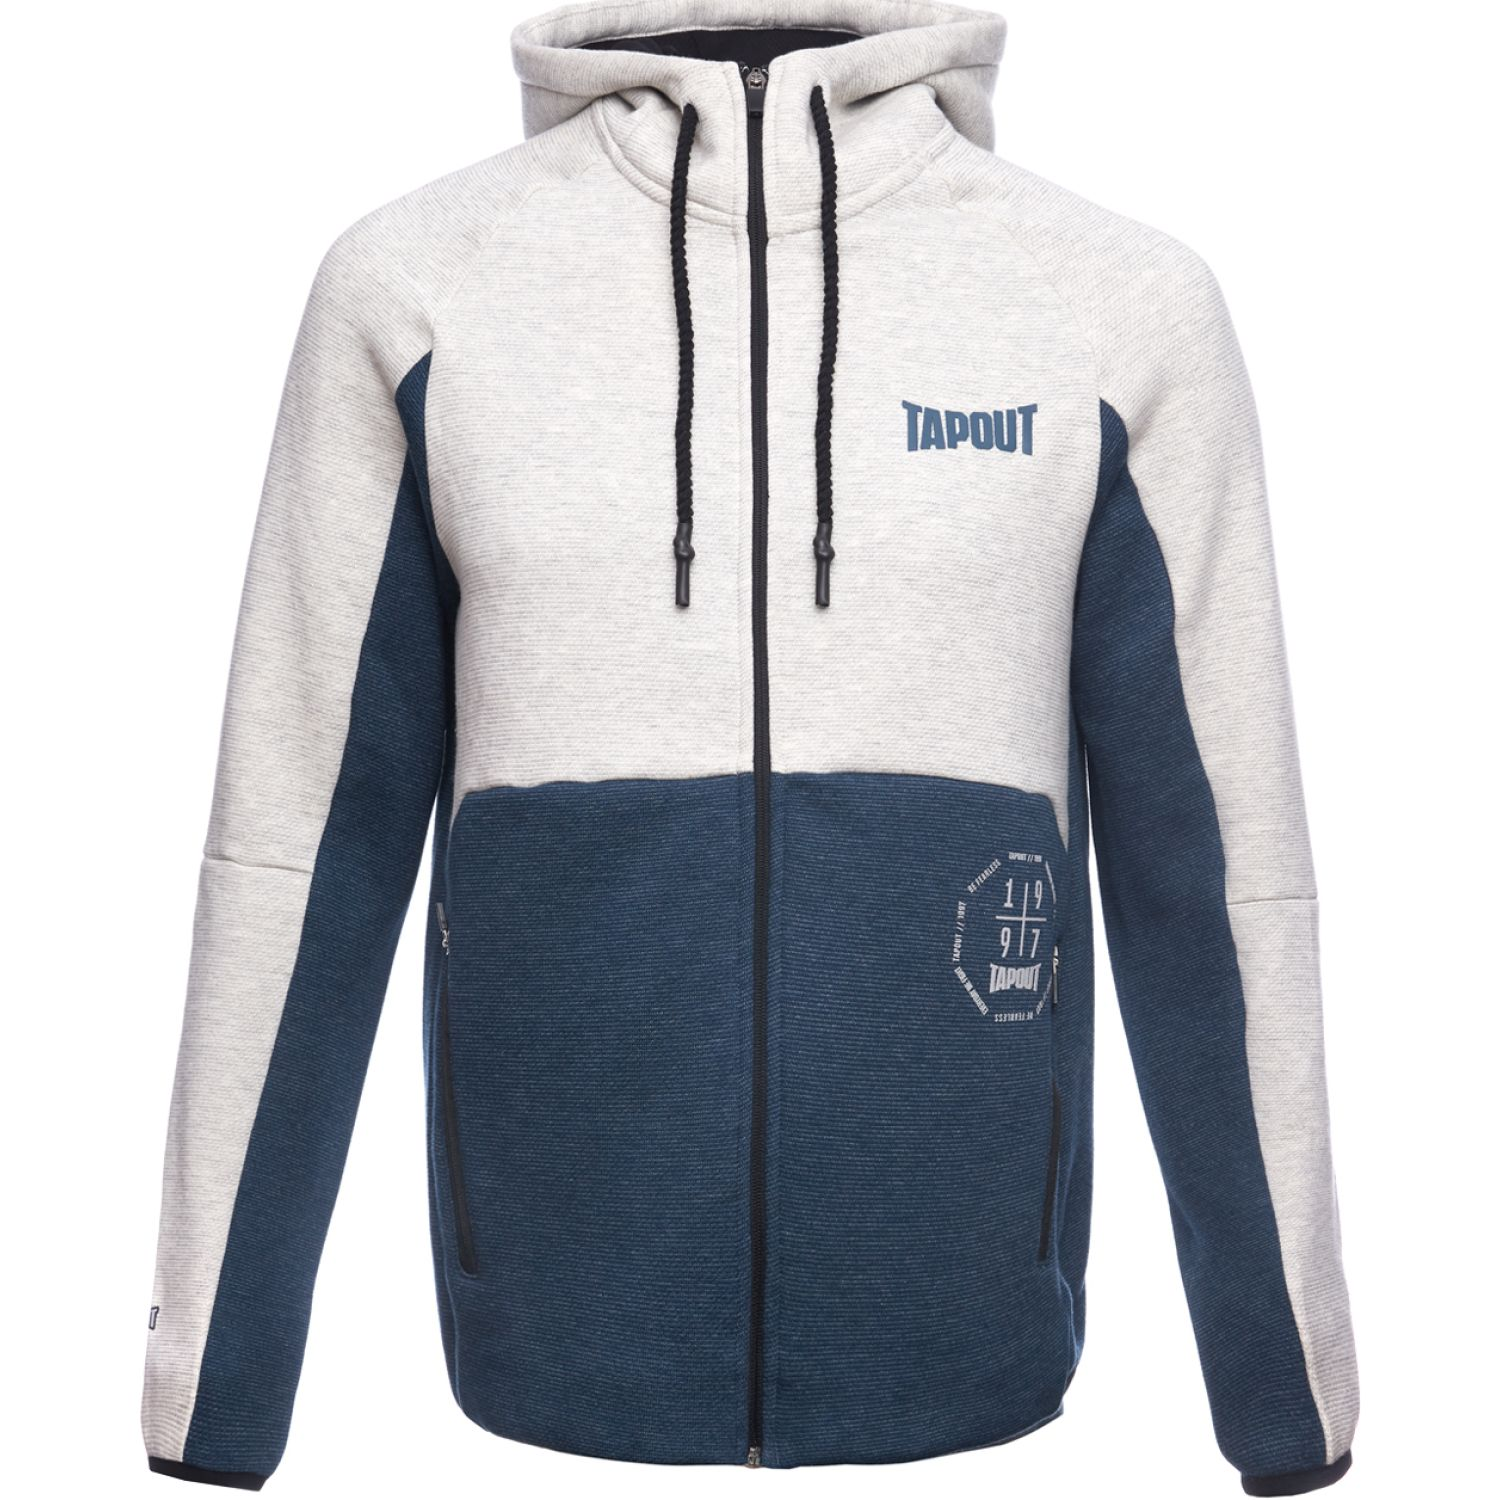 TAPOUT POLERA CASUAL TYRELL ALGODÓN Azul Hoodies y Sweaters Fashion